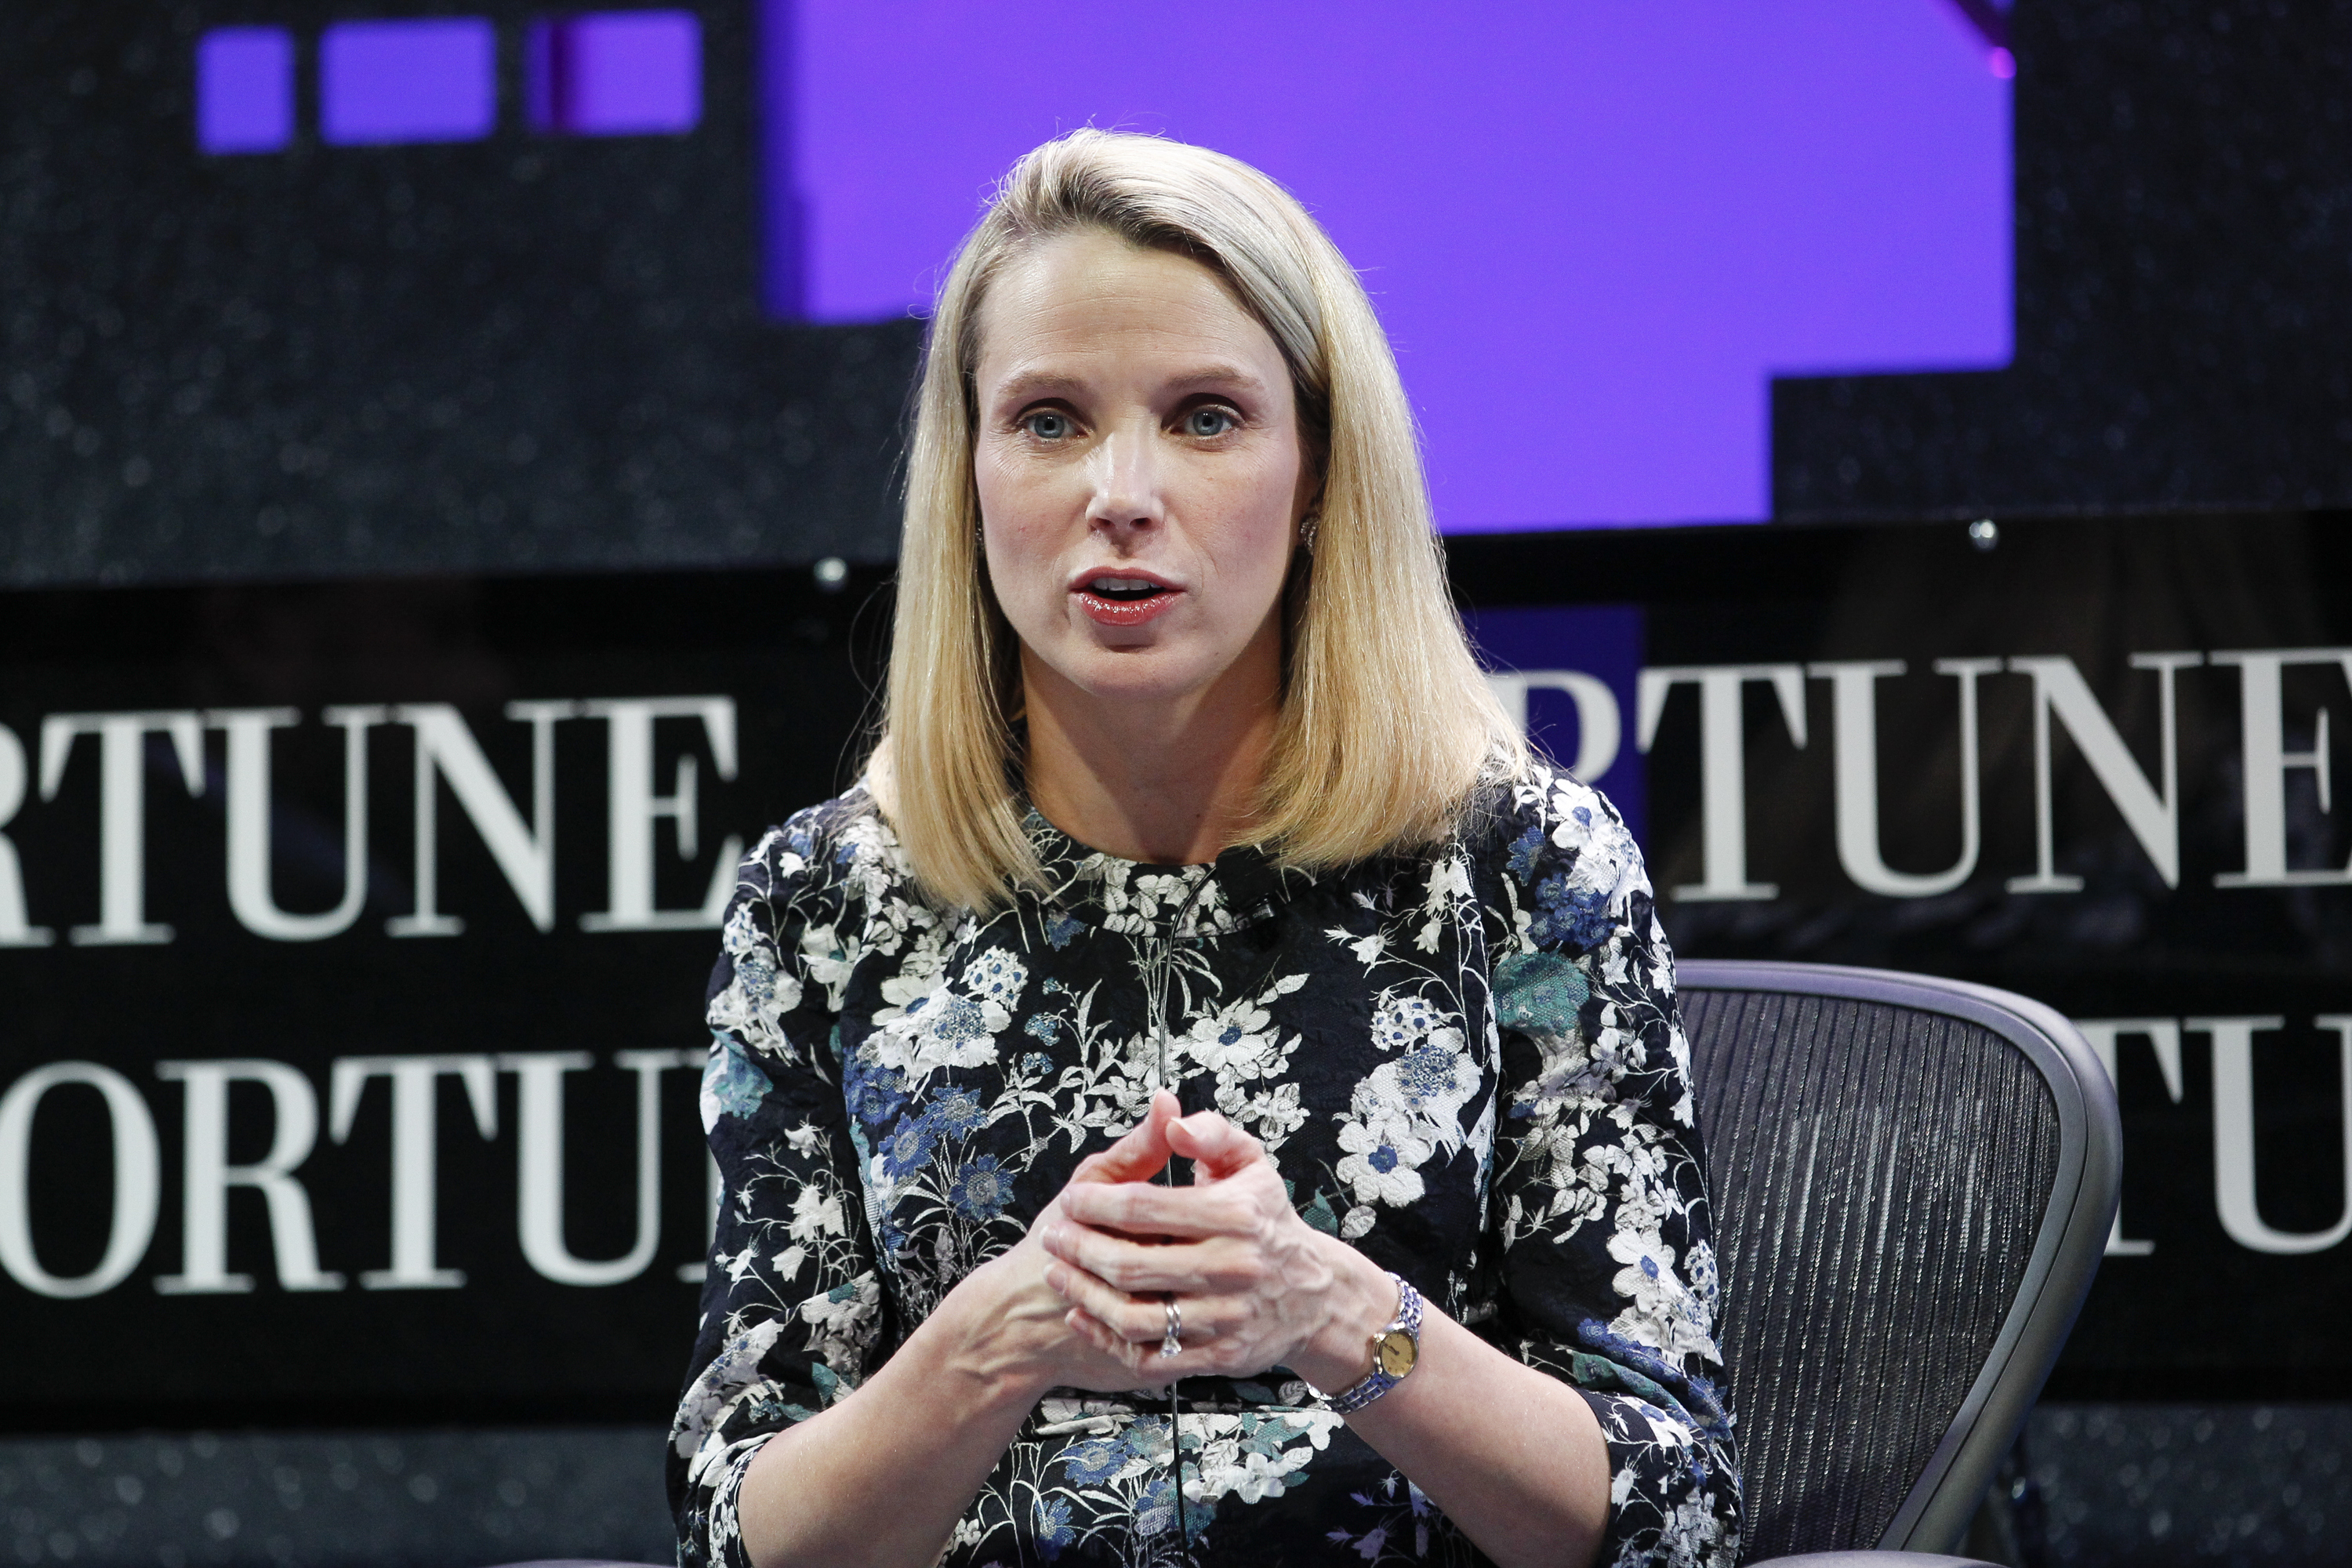 Marissa Mayer speaks during the Fortune Global Forum - Day2 at the Fairmont Hotel on Nov. 3, 2015 in San Francisco, California.